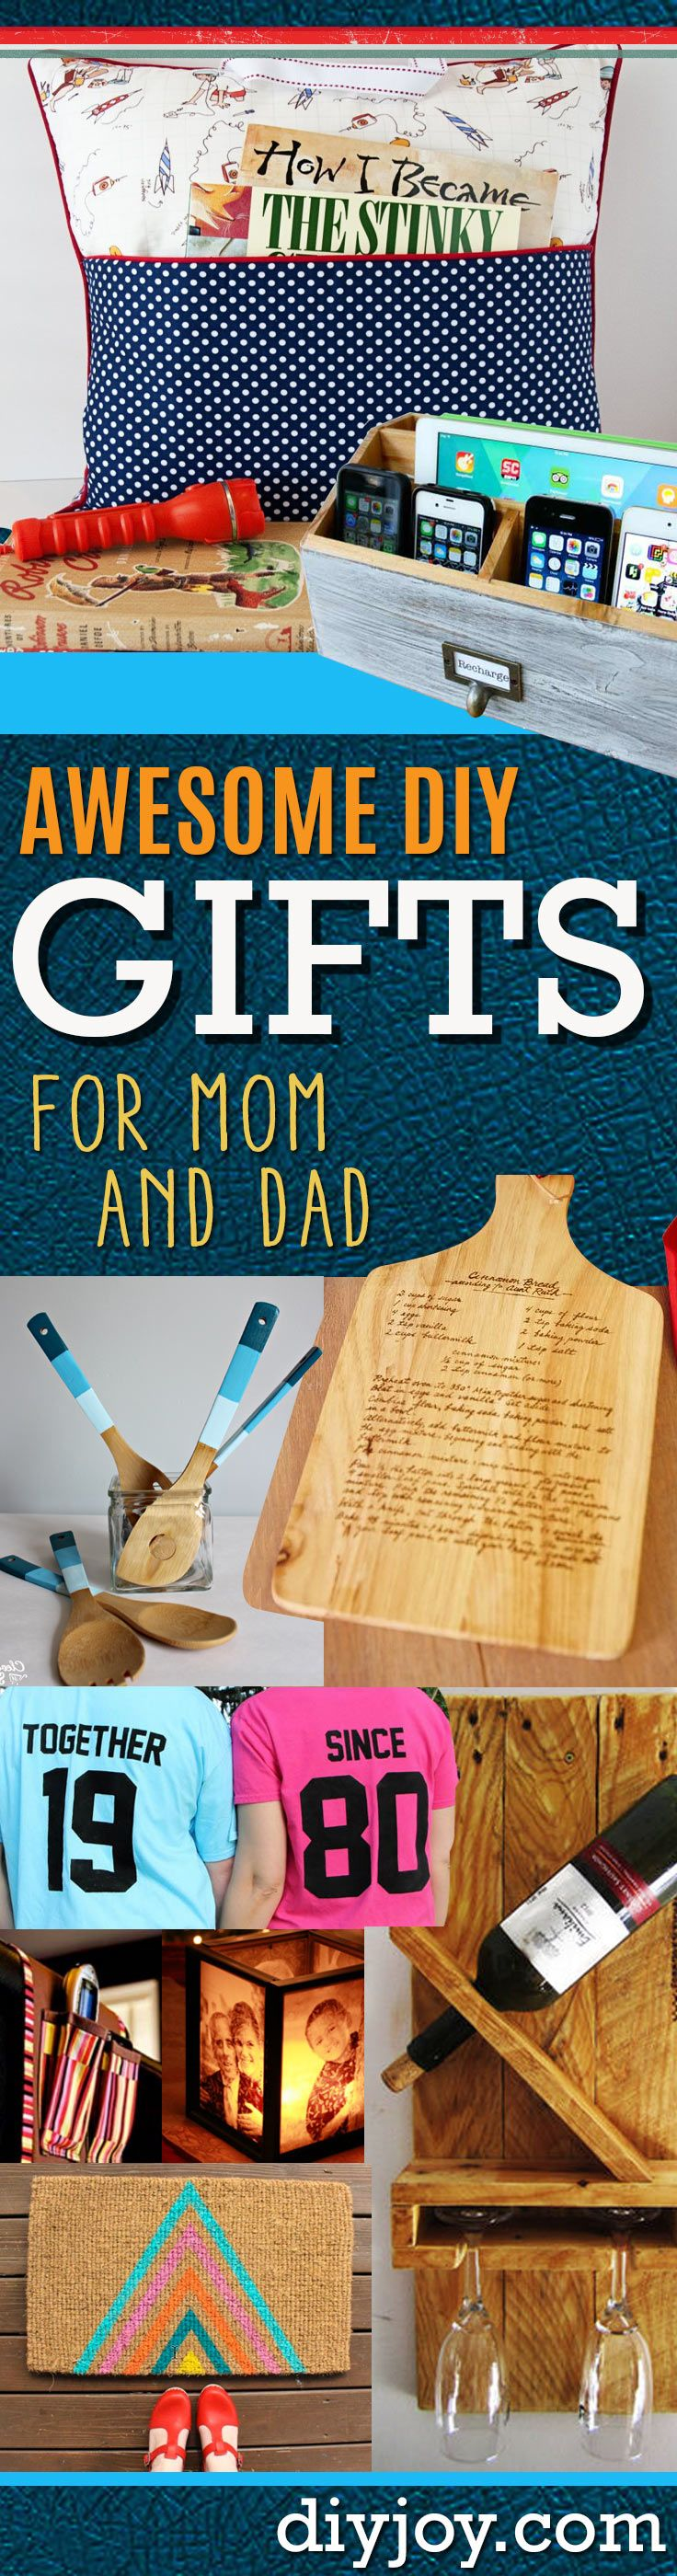 Homemade christmas gifts ideas for mom and dad